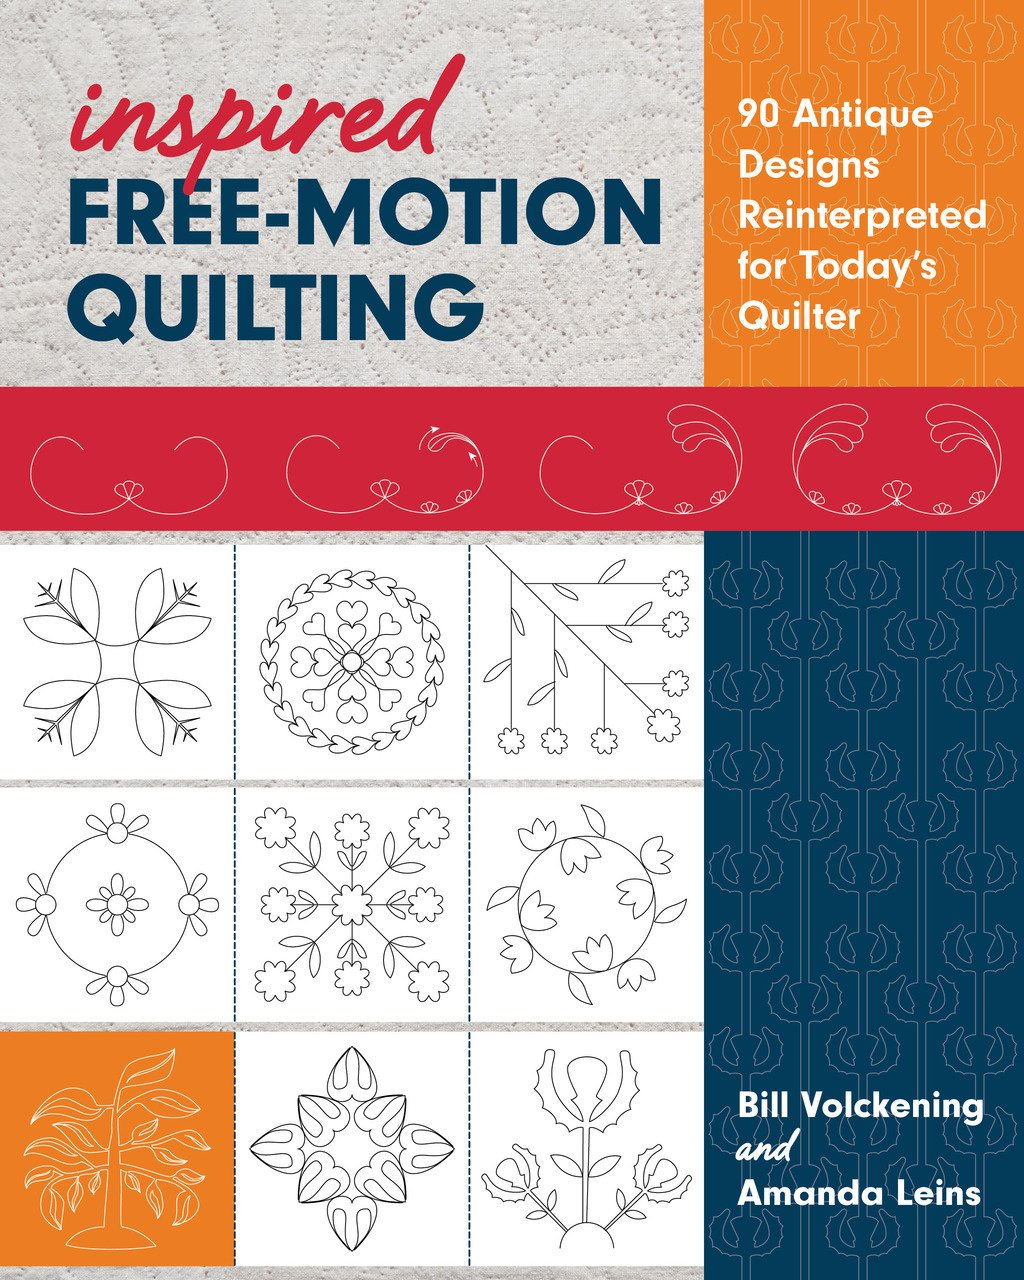 Inspired Free-Motion Quilting by Bill Volckening & Amanda Leins